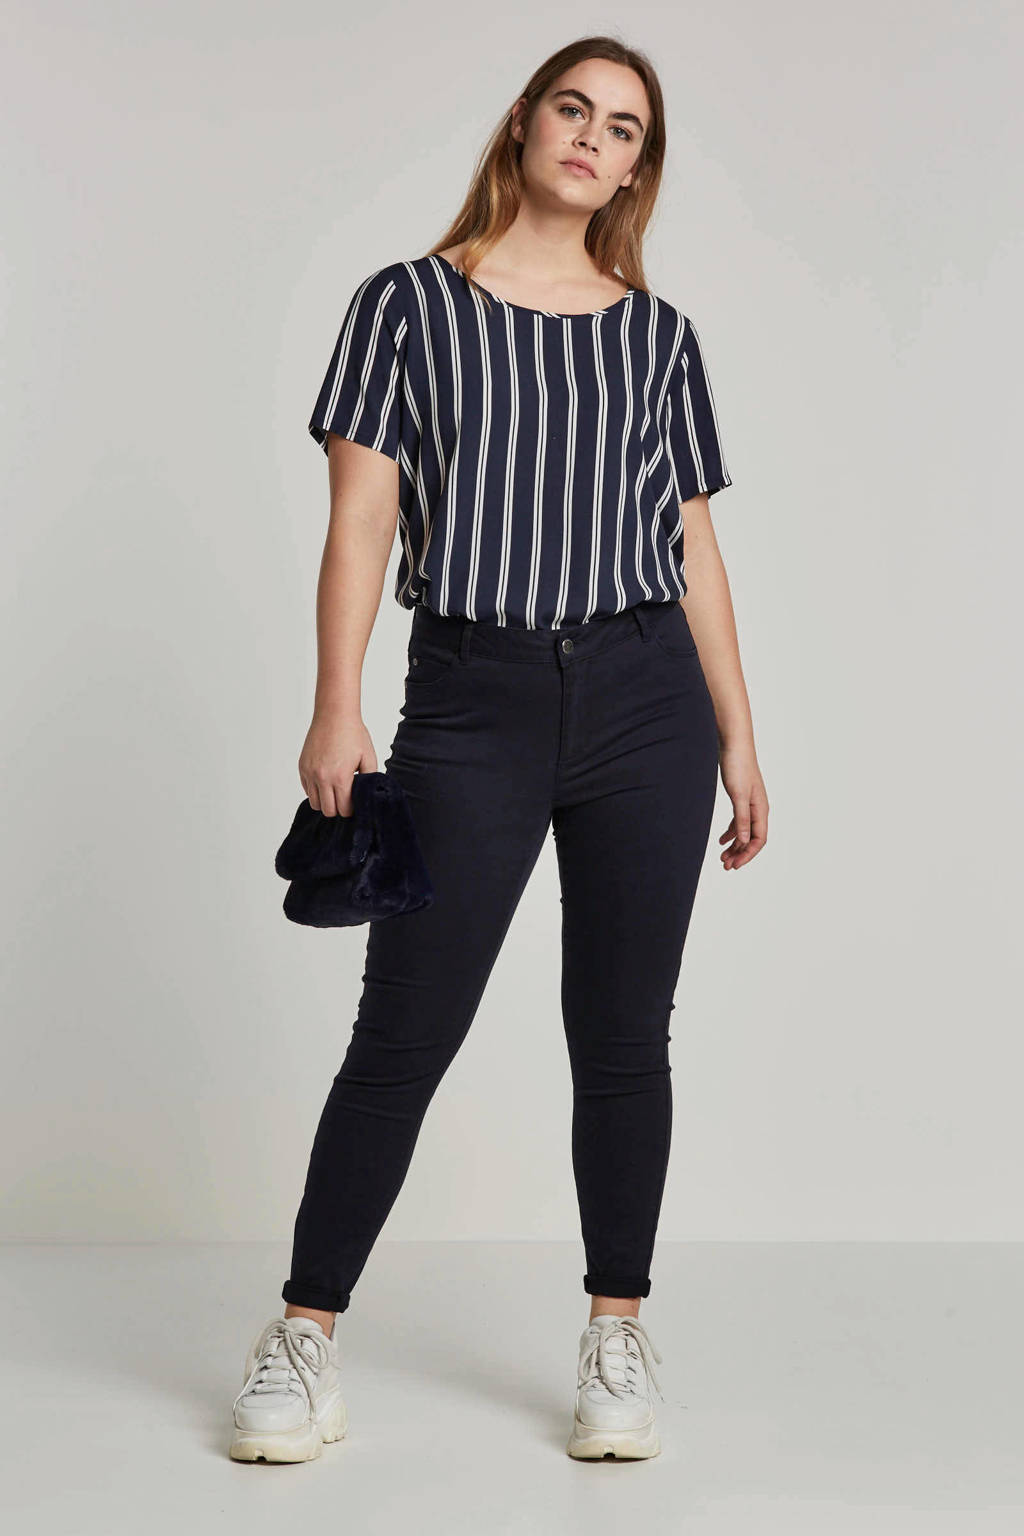 ONLY carmakoma top met strepen, Donkerblauw/wit